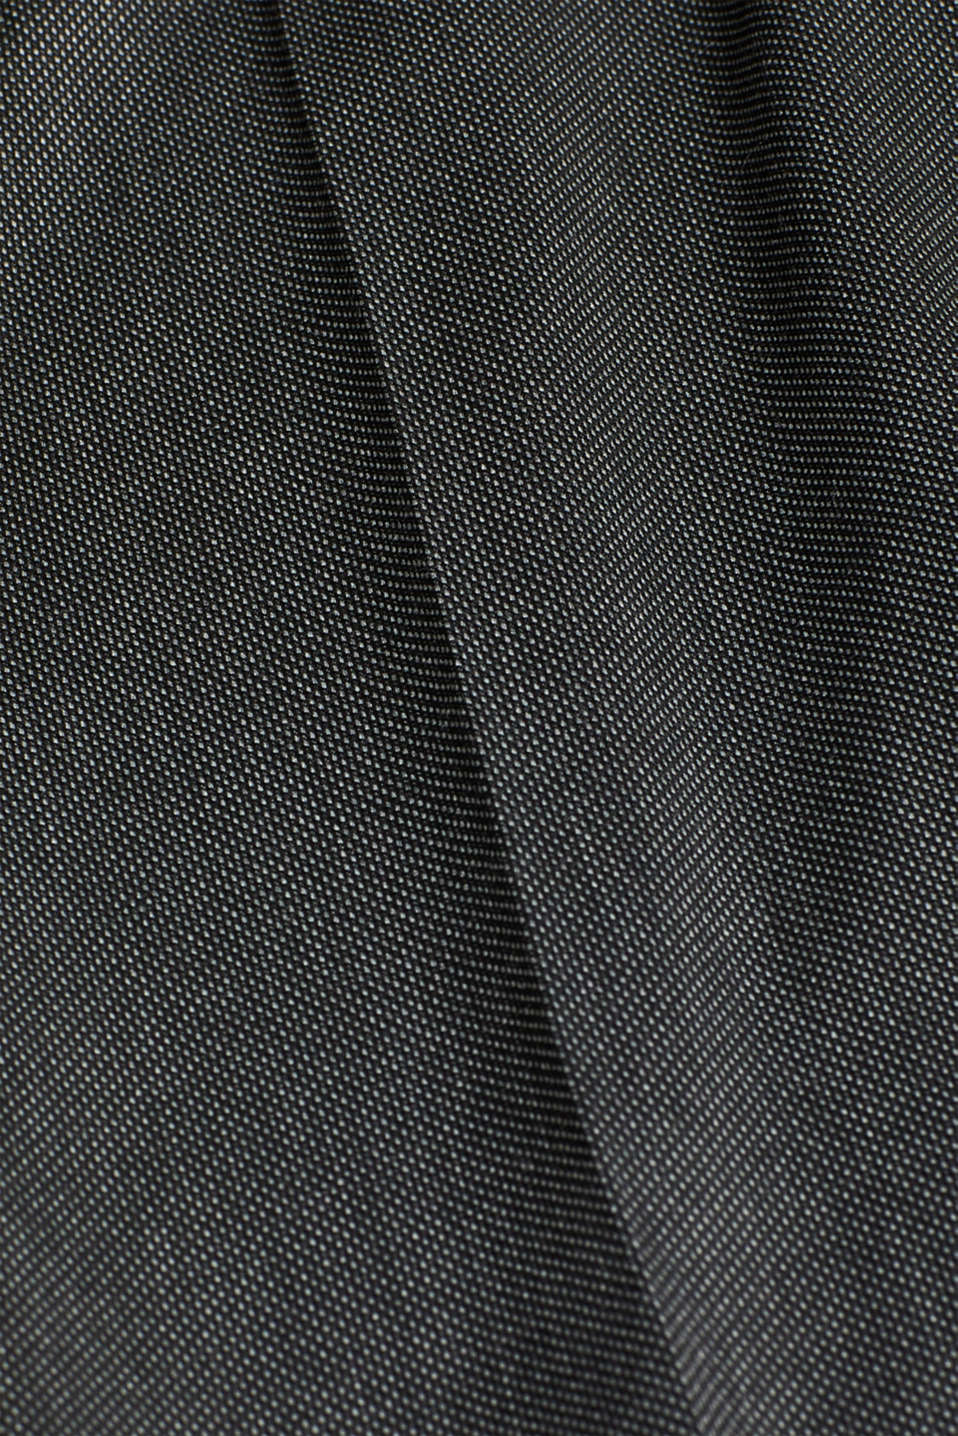 SALT'N PEPPER Mix + Match stretch trousers, ANTHRACITE, detail image number 4